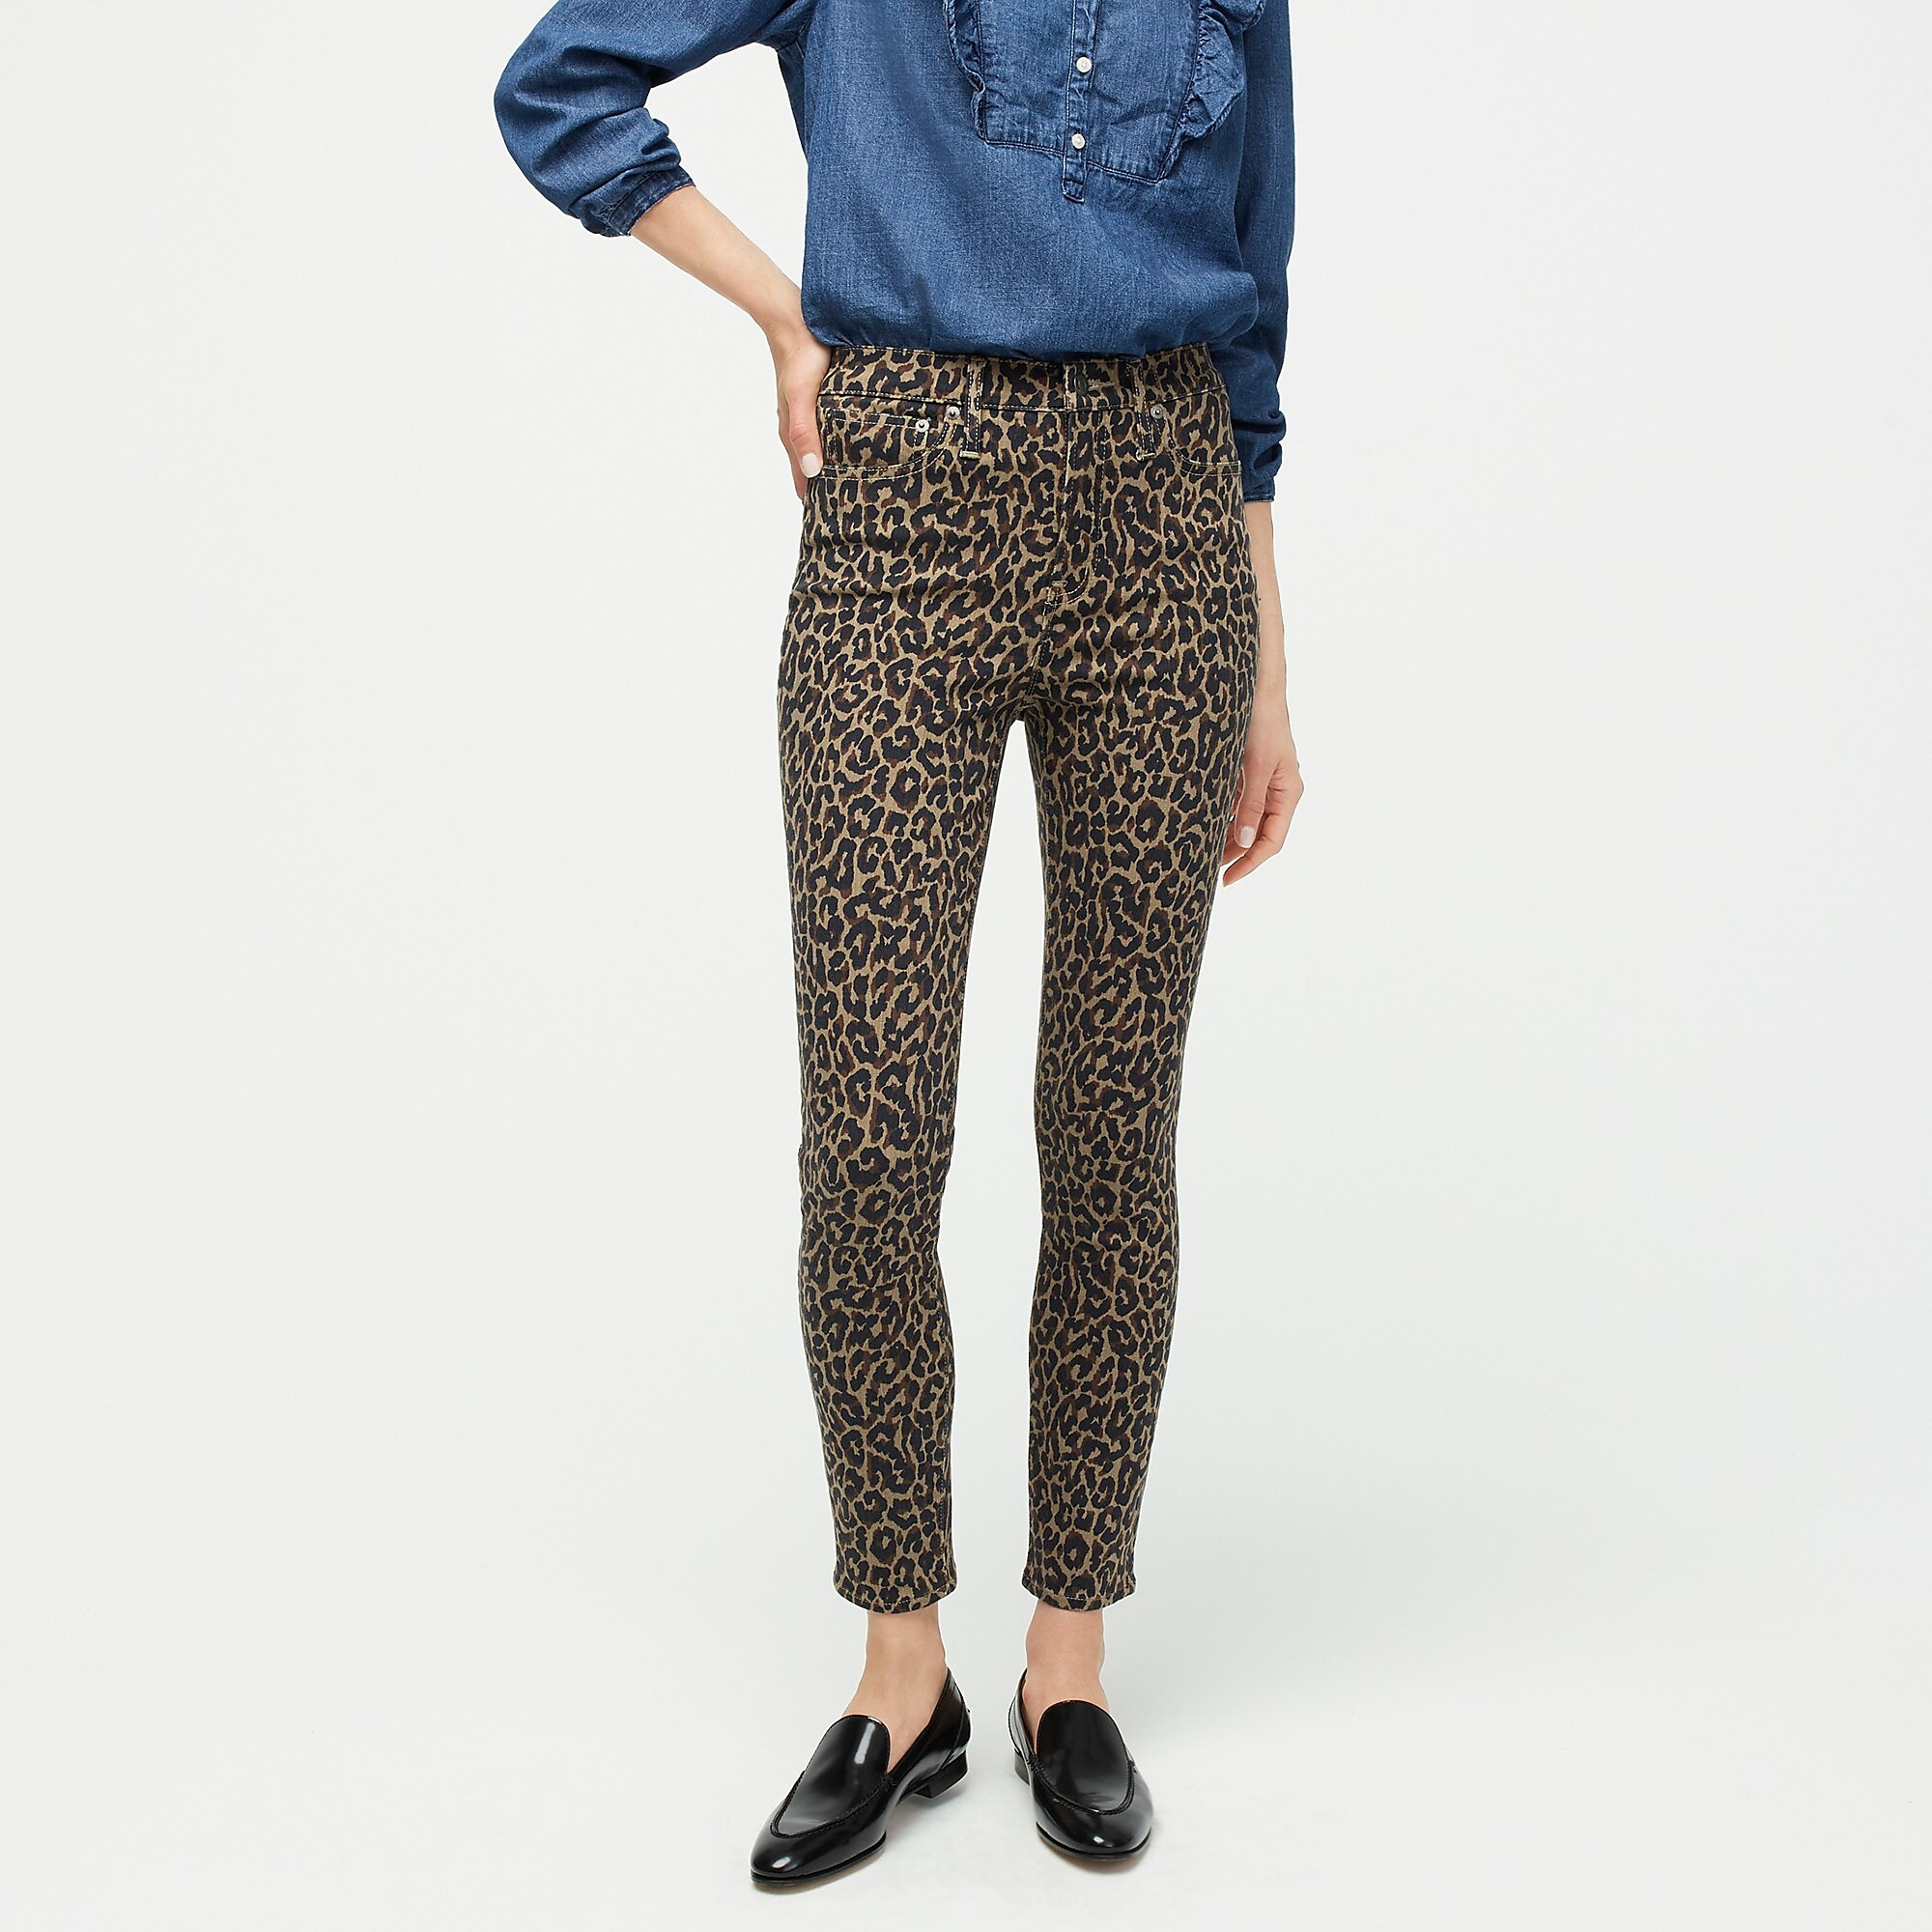 Leopard Print High Rise Jeans